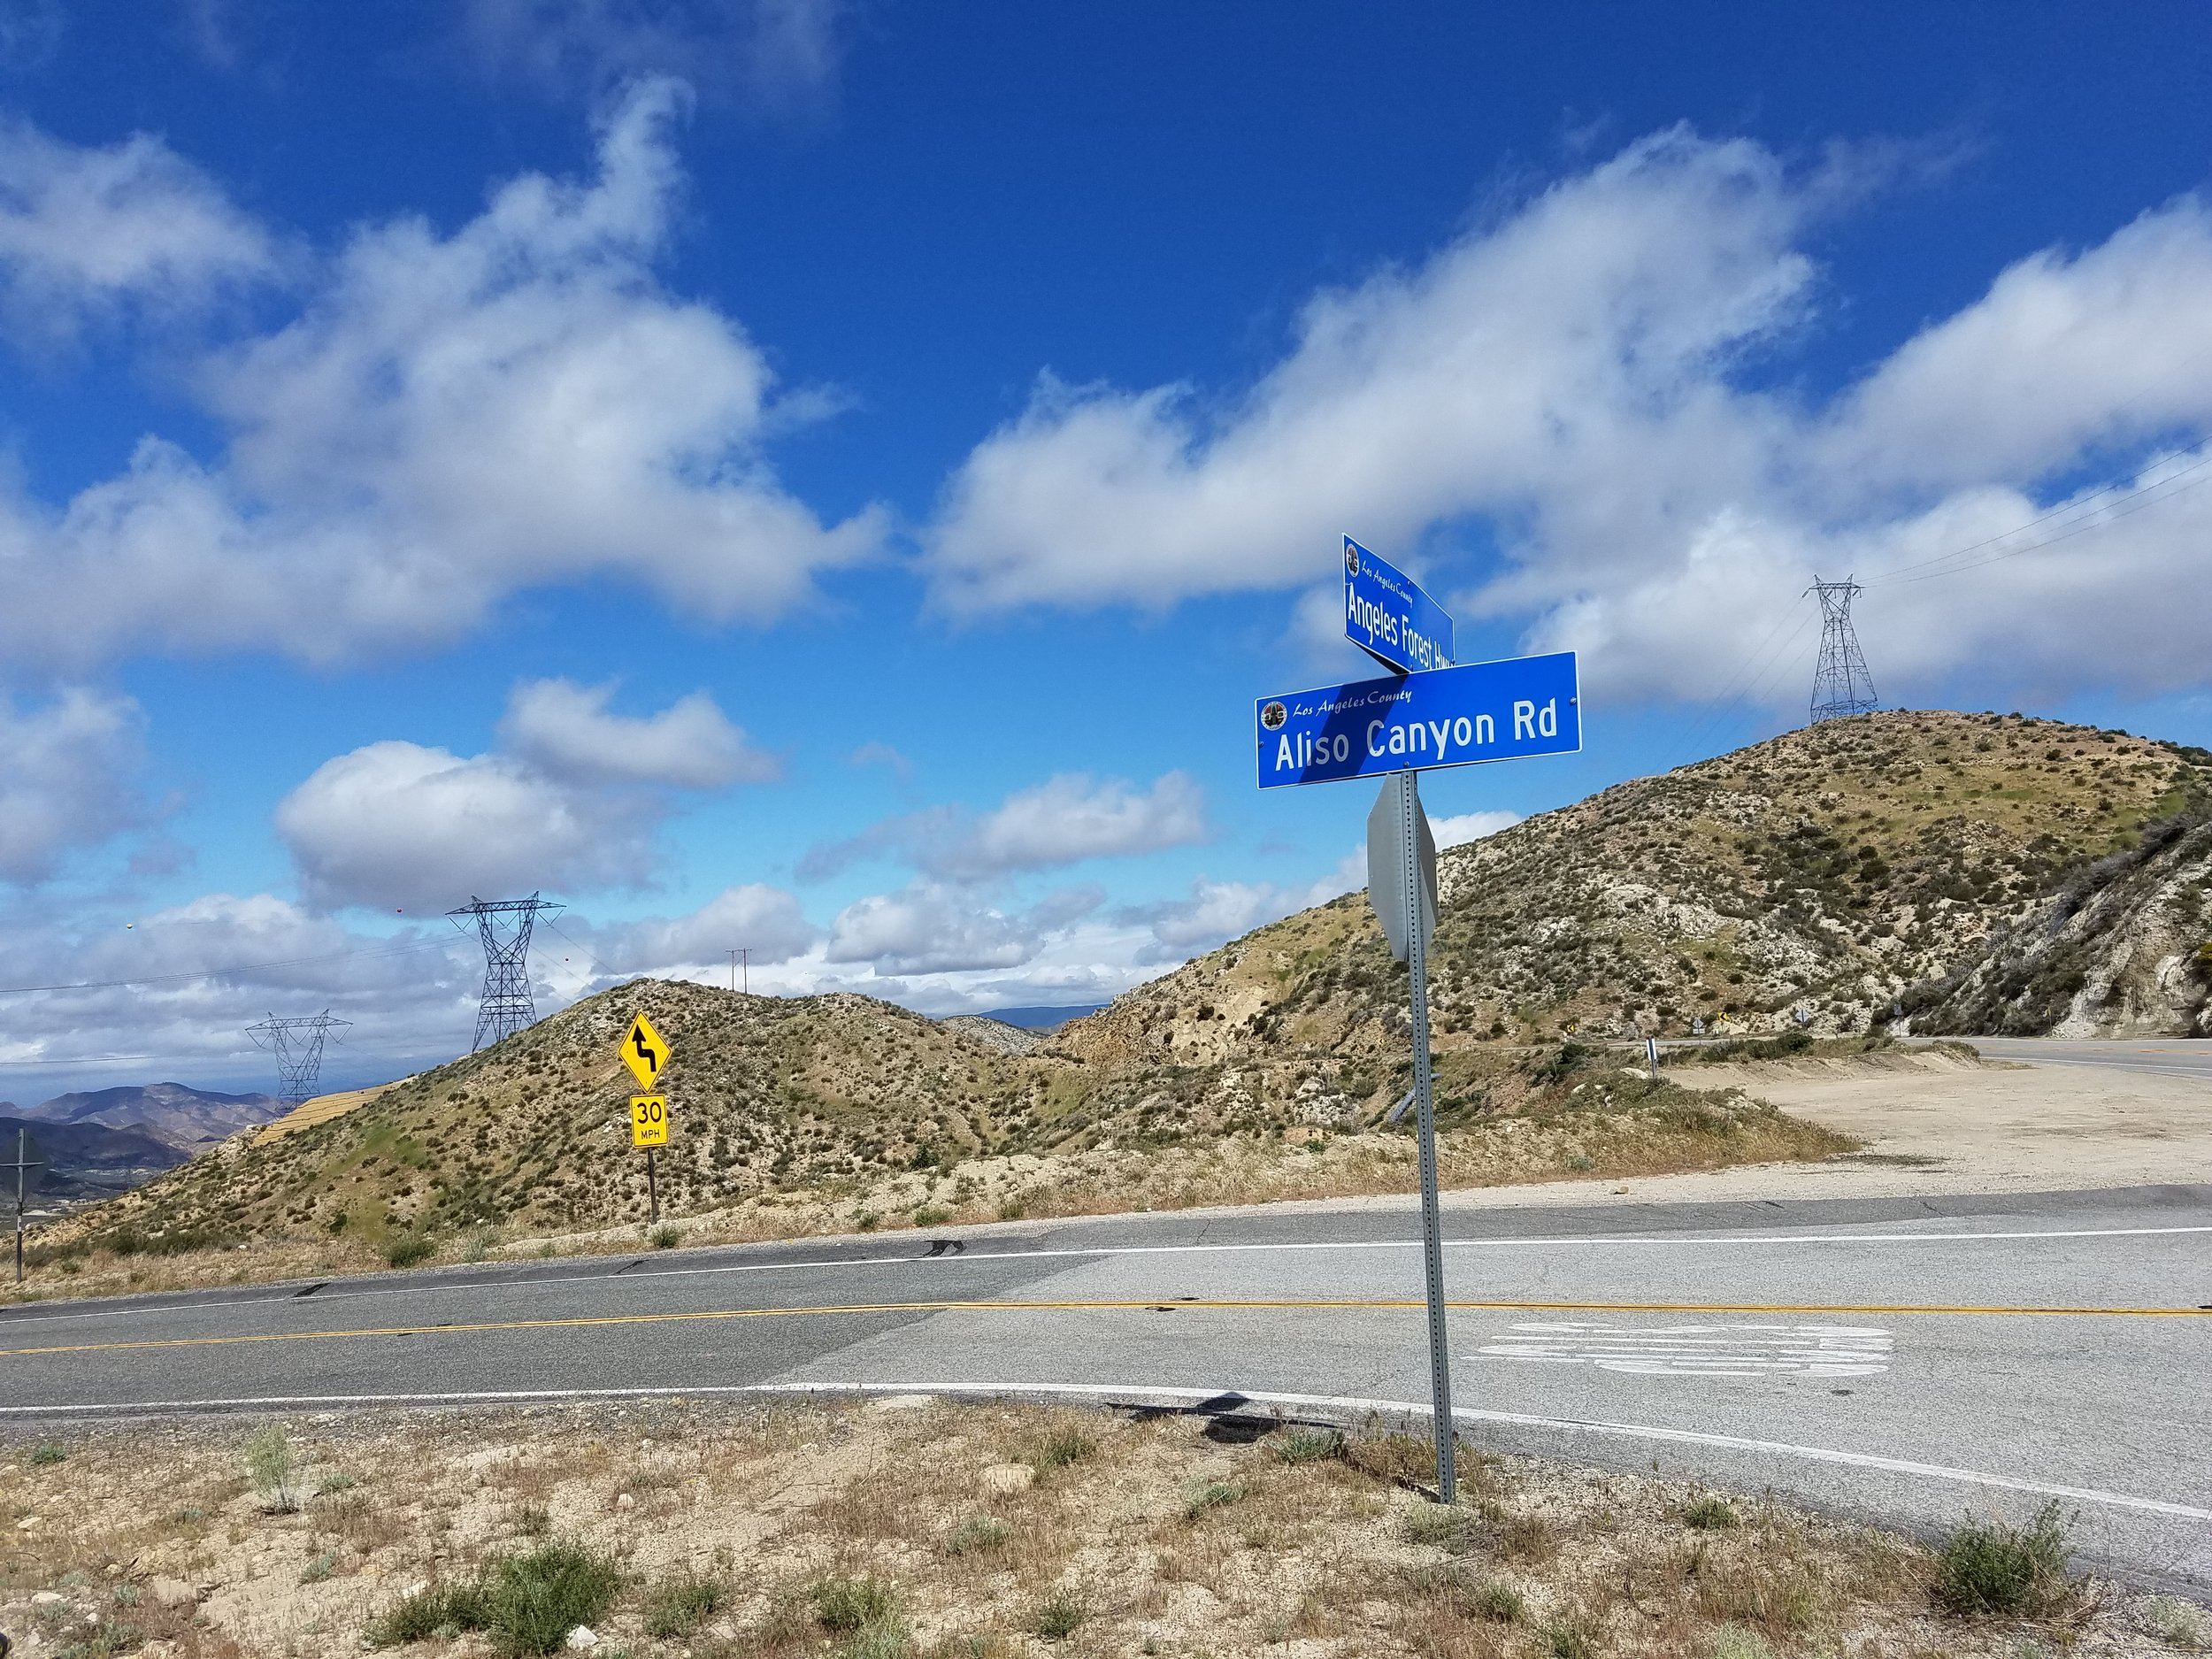 Finally reaching the quieter Aliso Canyon Road.